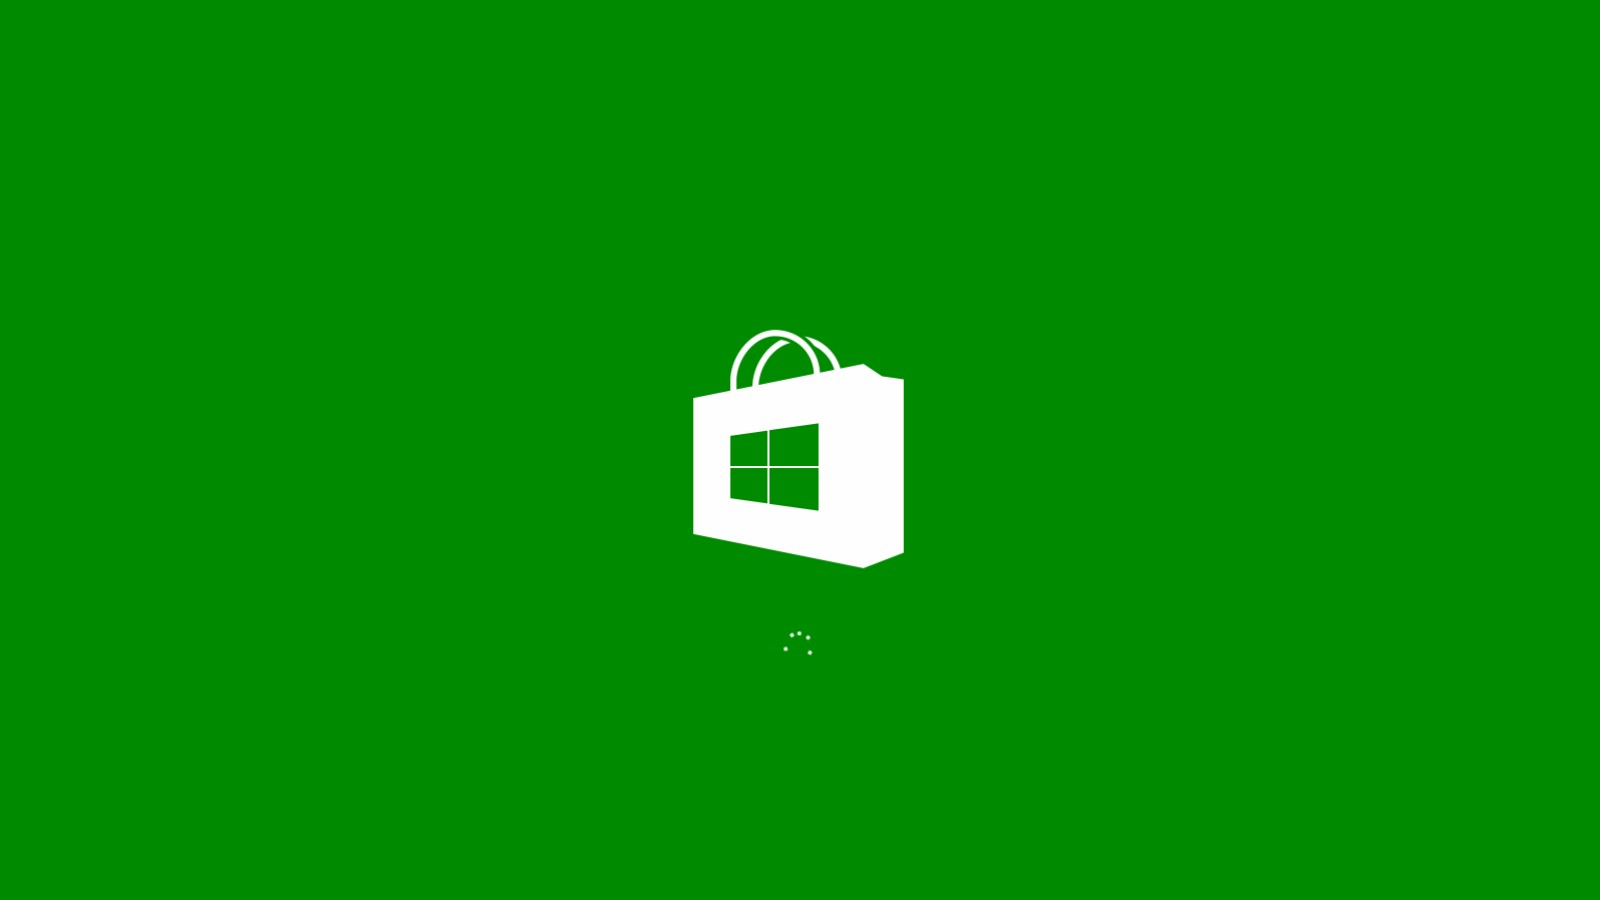 Windows Store is ready to part ways with meaningless apps